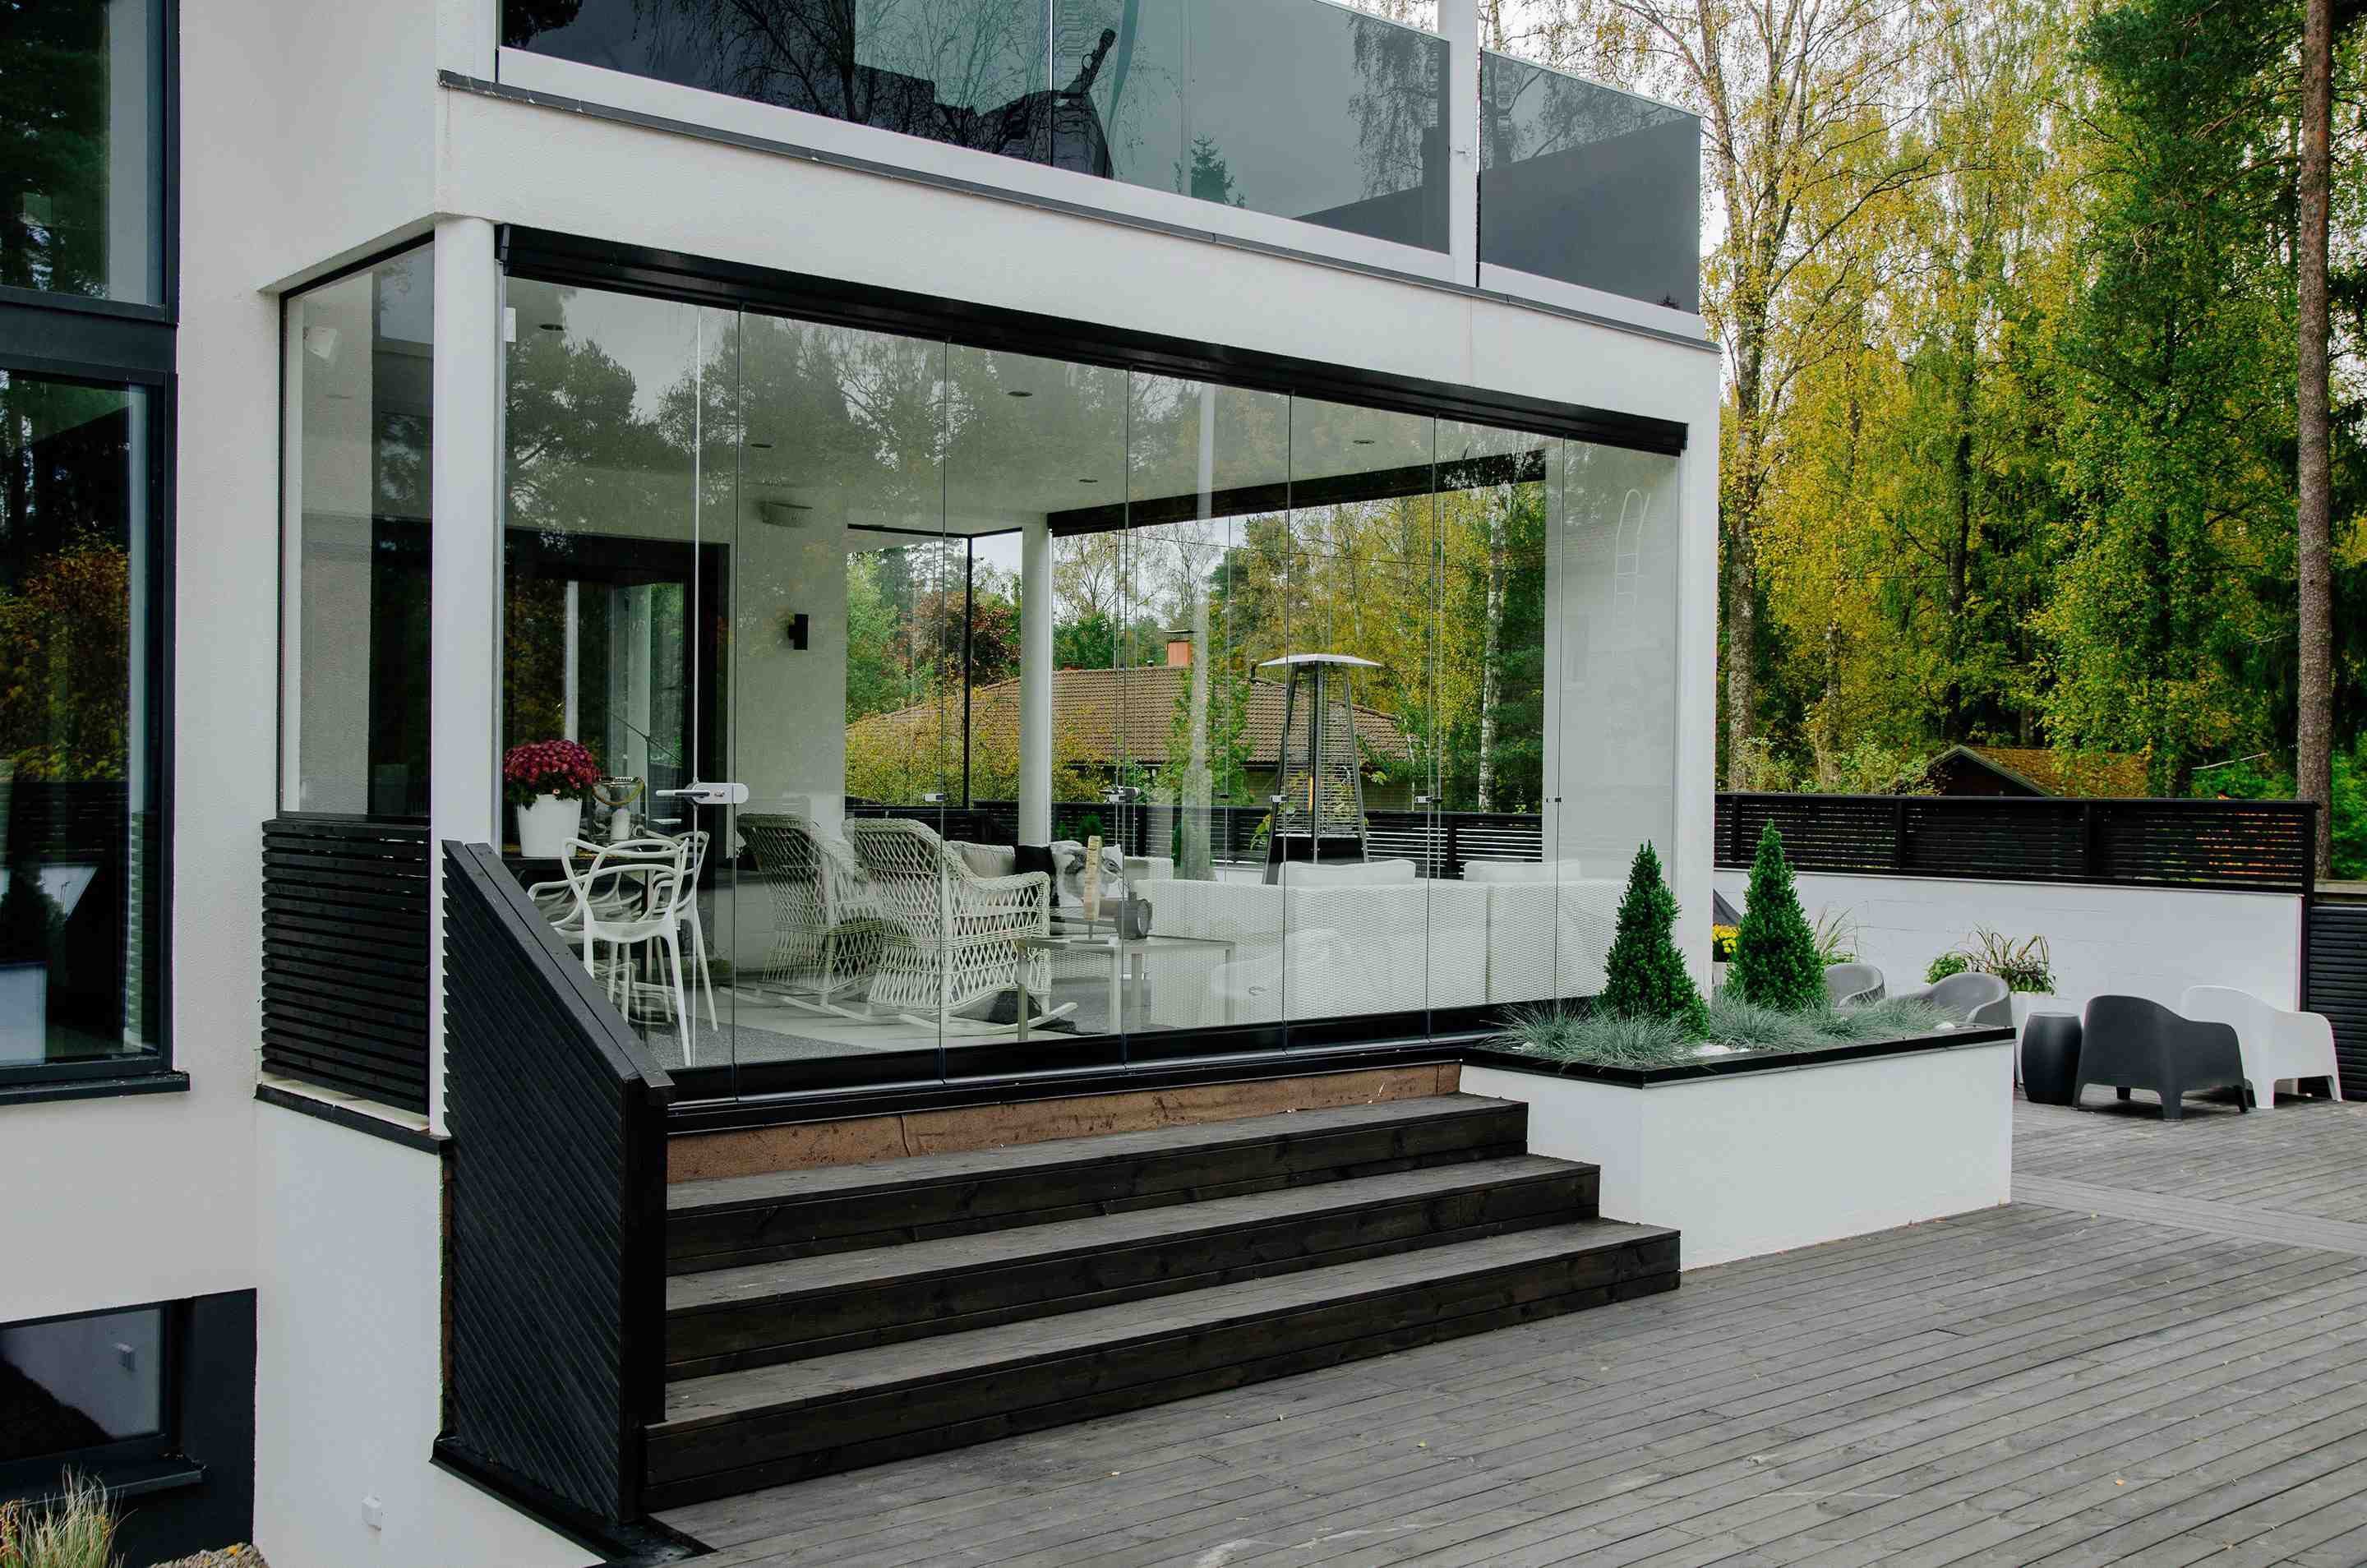 lumon canada, sunroom toronto, sunroom hamilton, sunroom vancouver, sunroom in canada, glass, retractable glass, outdoor enclosure